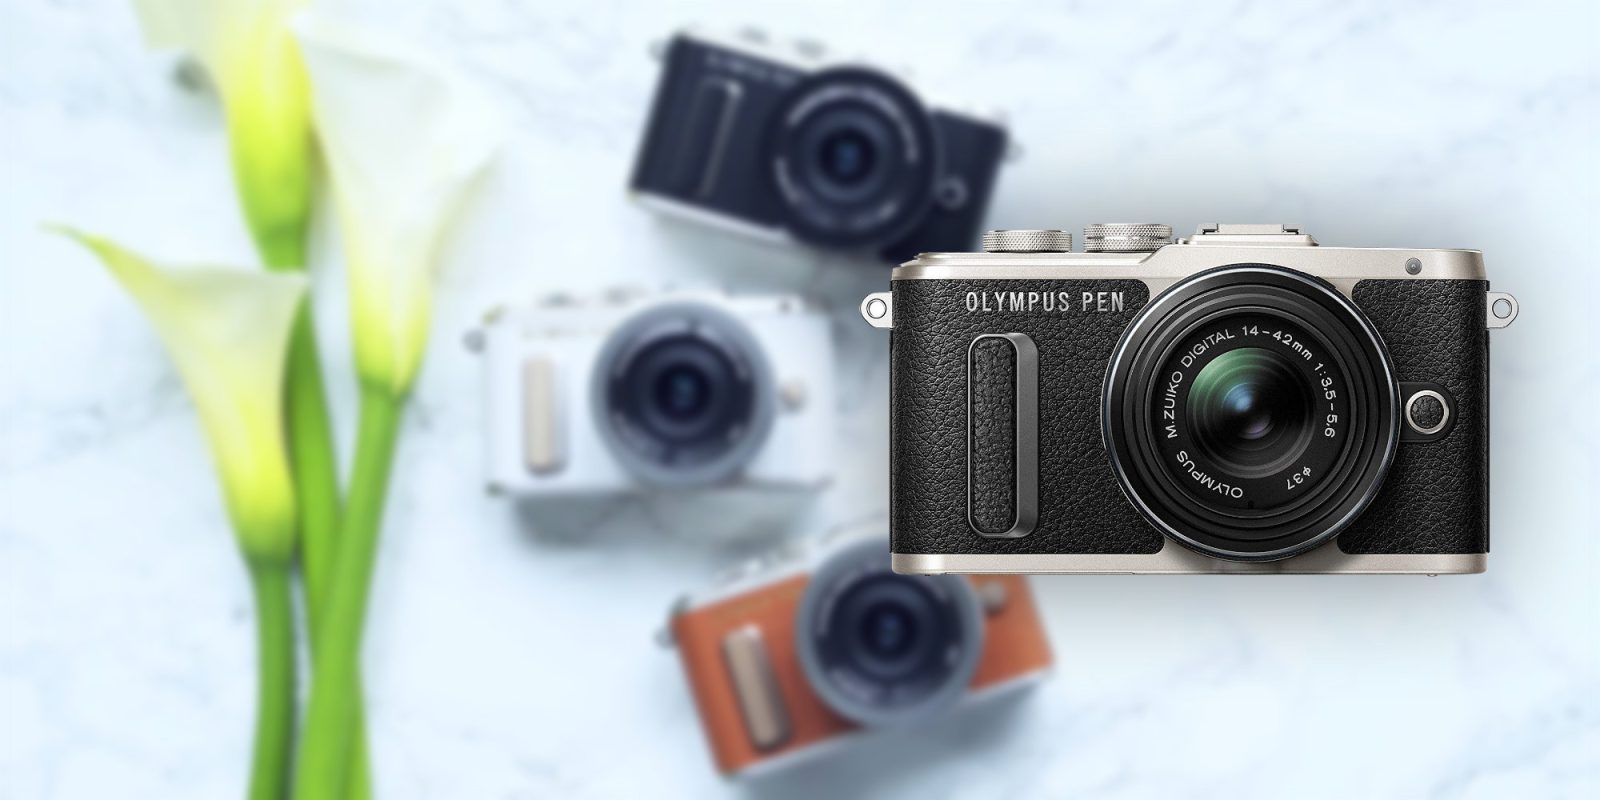 Nail that bokeh blur with Olympus' Mirrorless Camera Kit: $290 (Reg. $400)